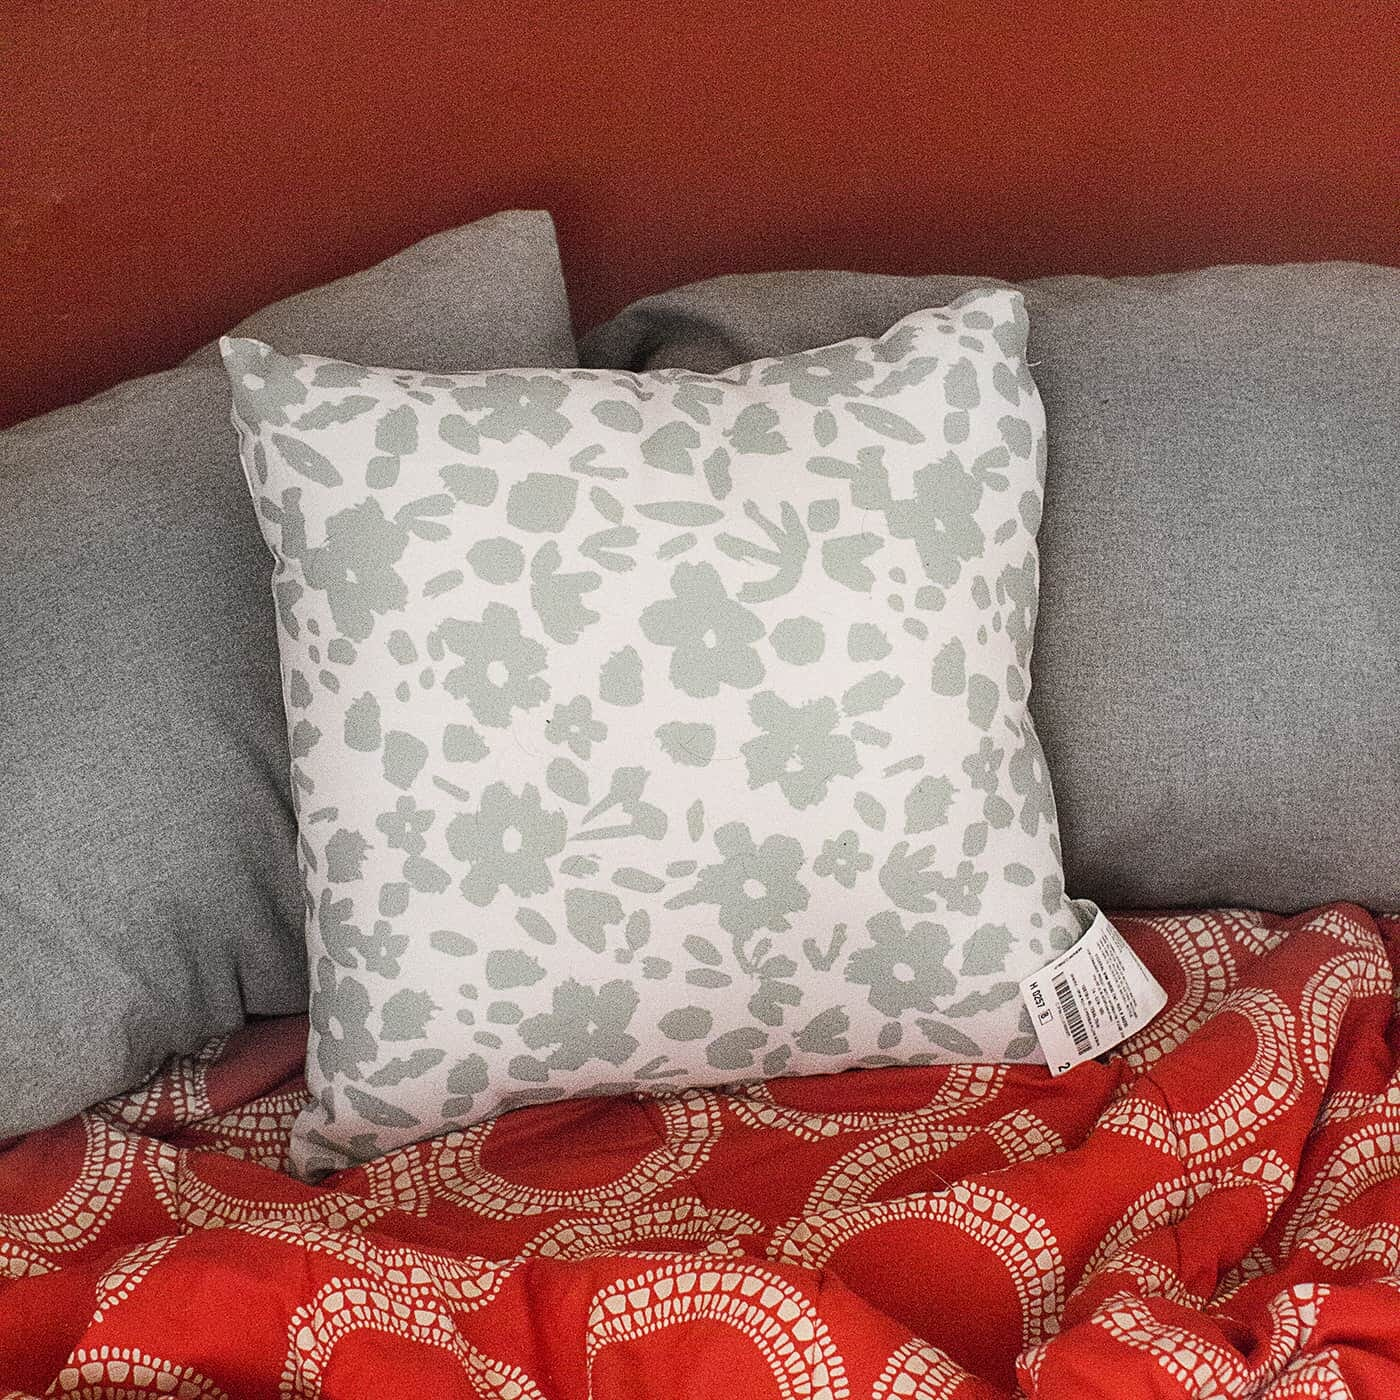 Patterned throw pillows